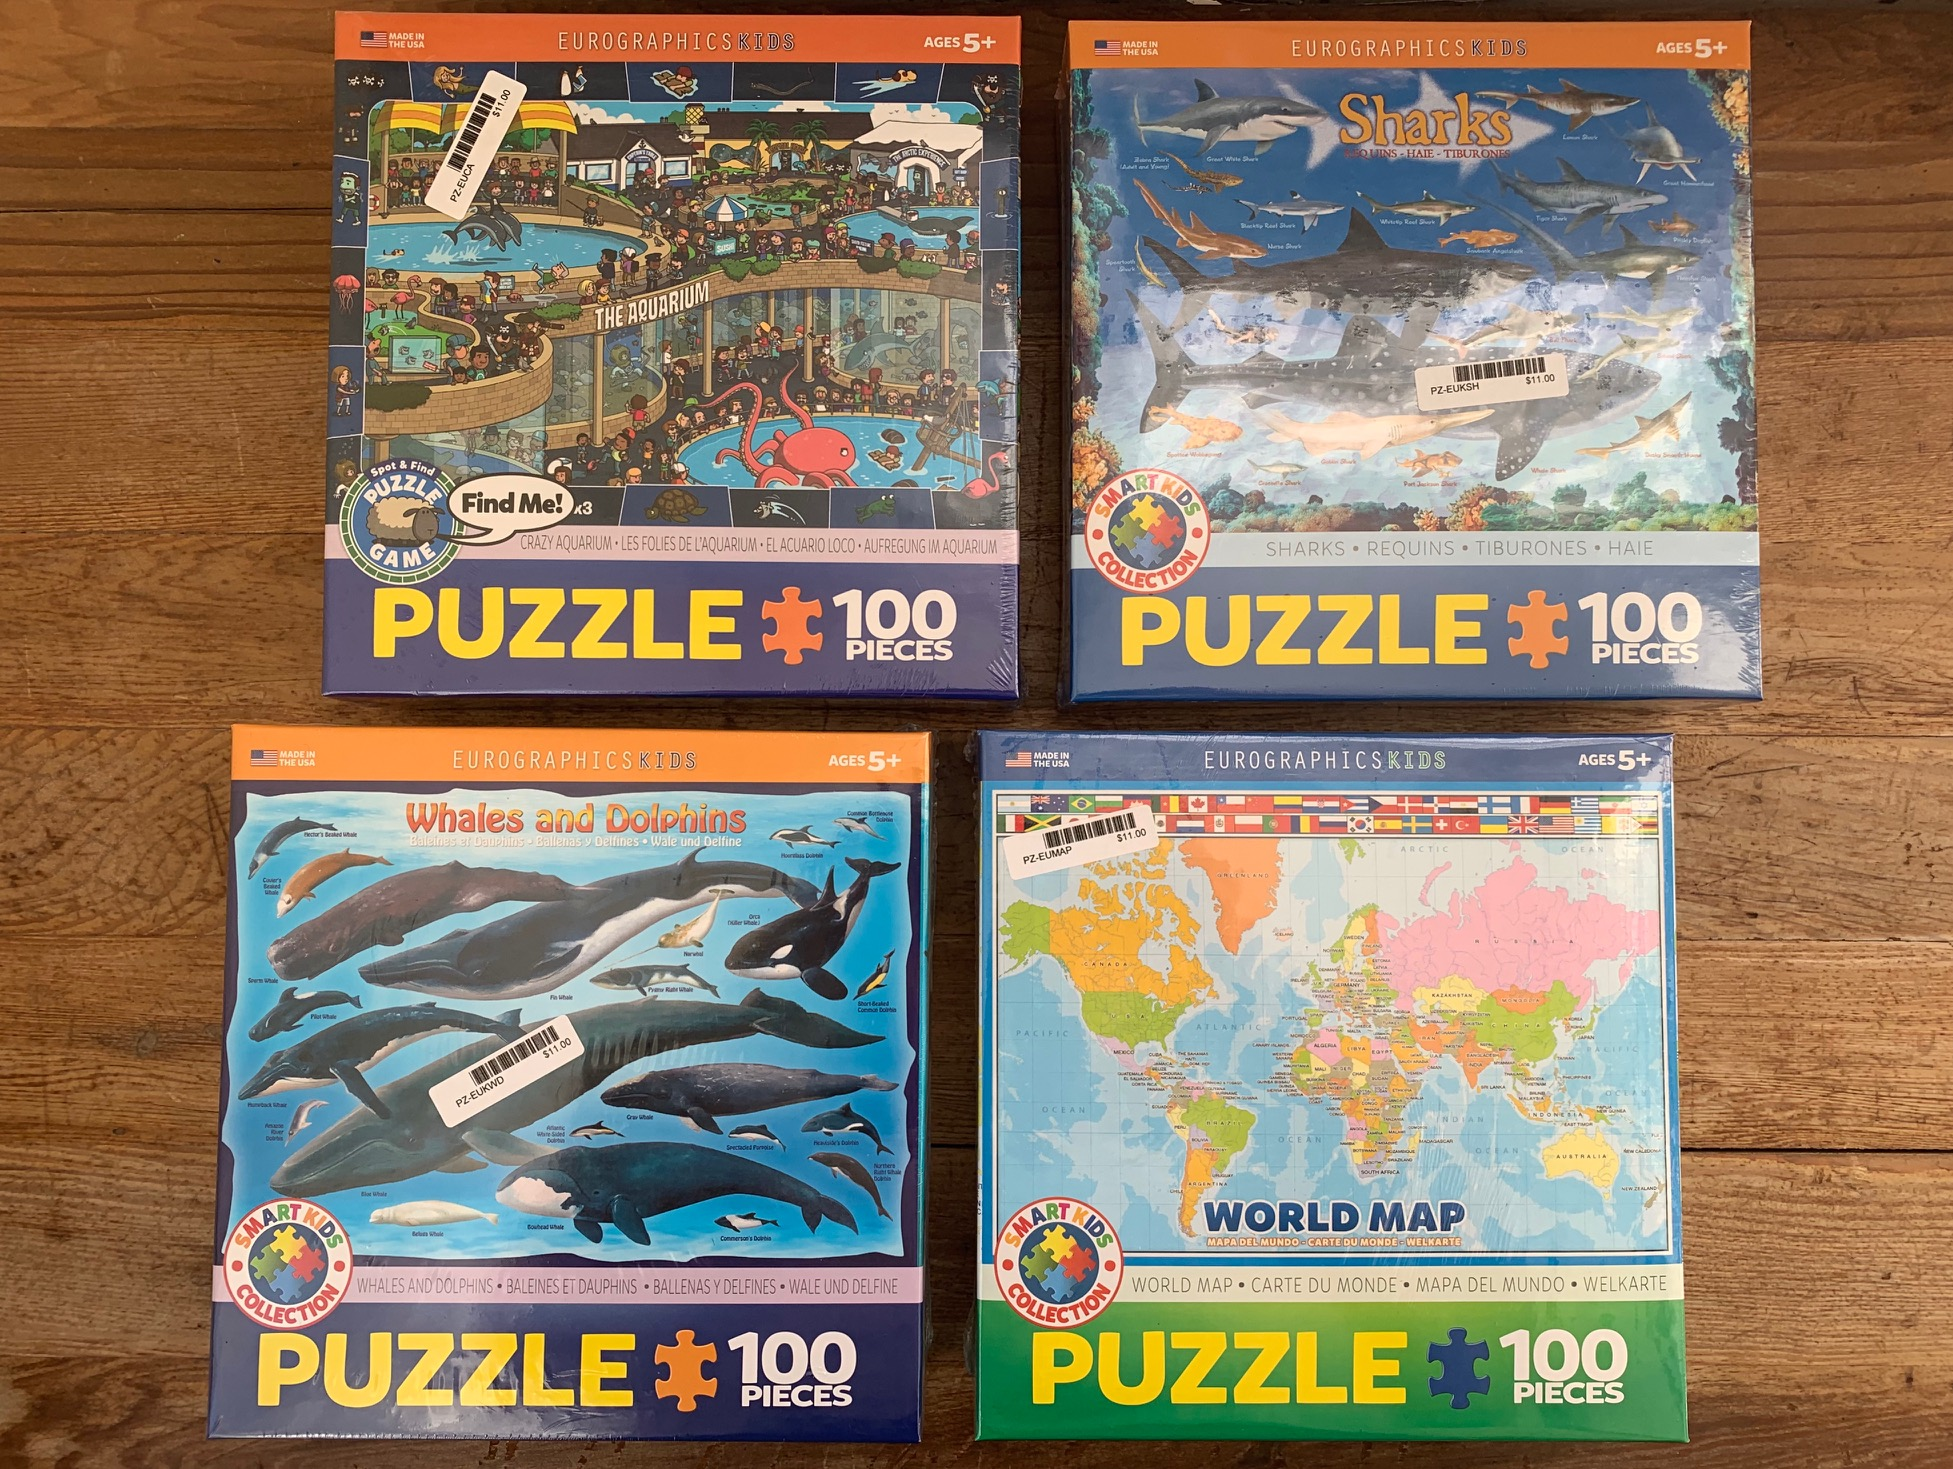 small-puzzles-for-kids-mendocino